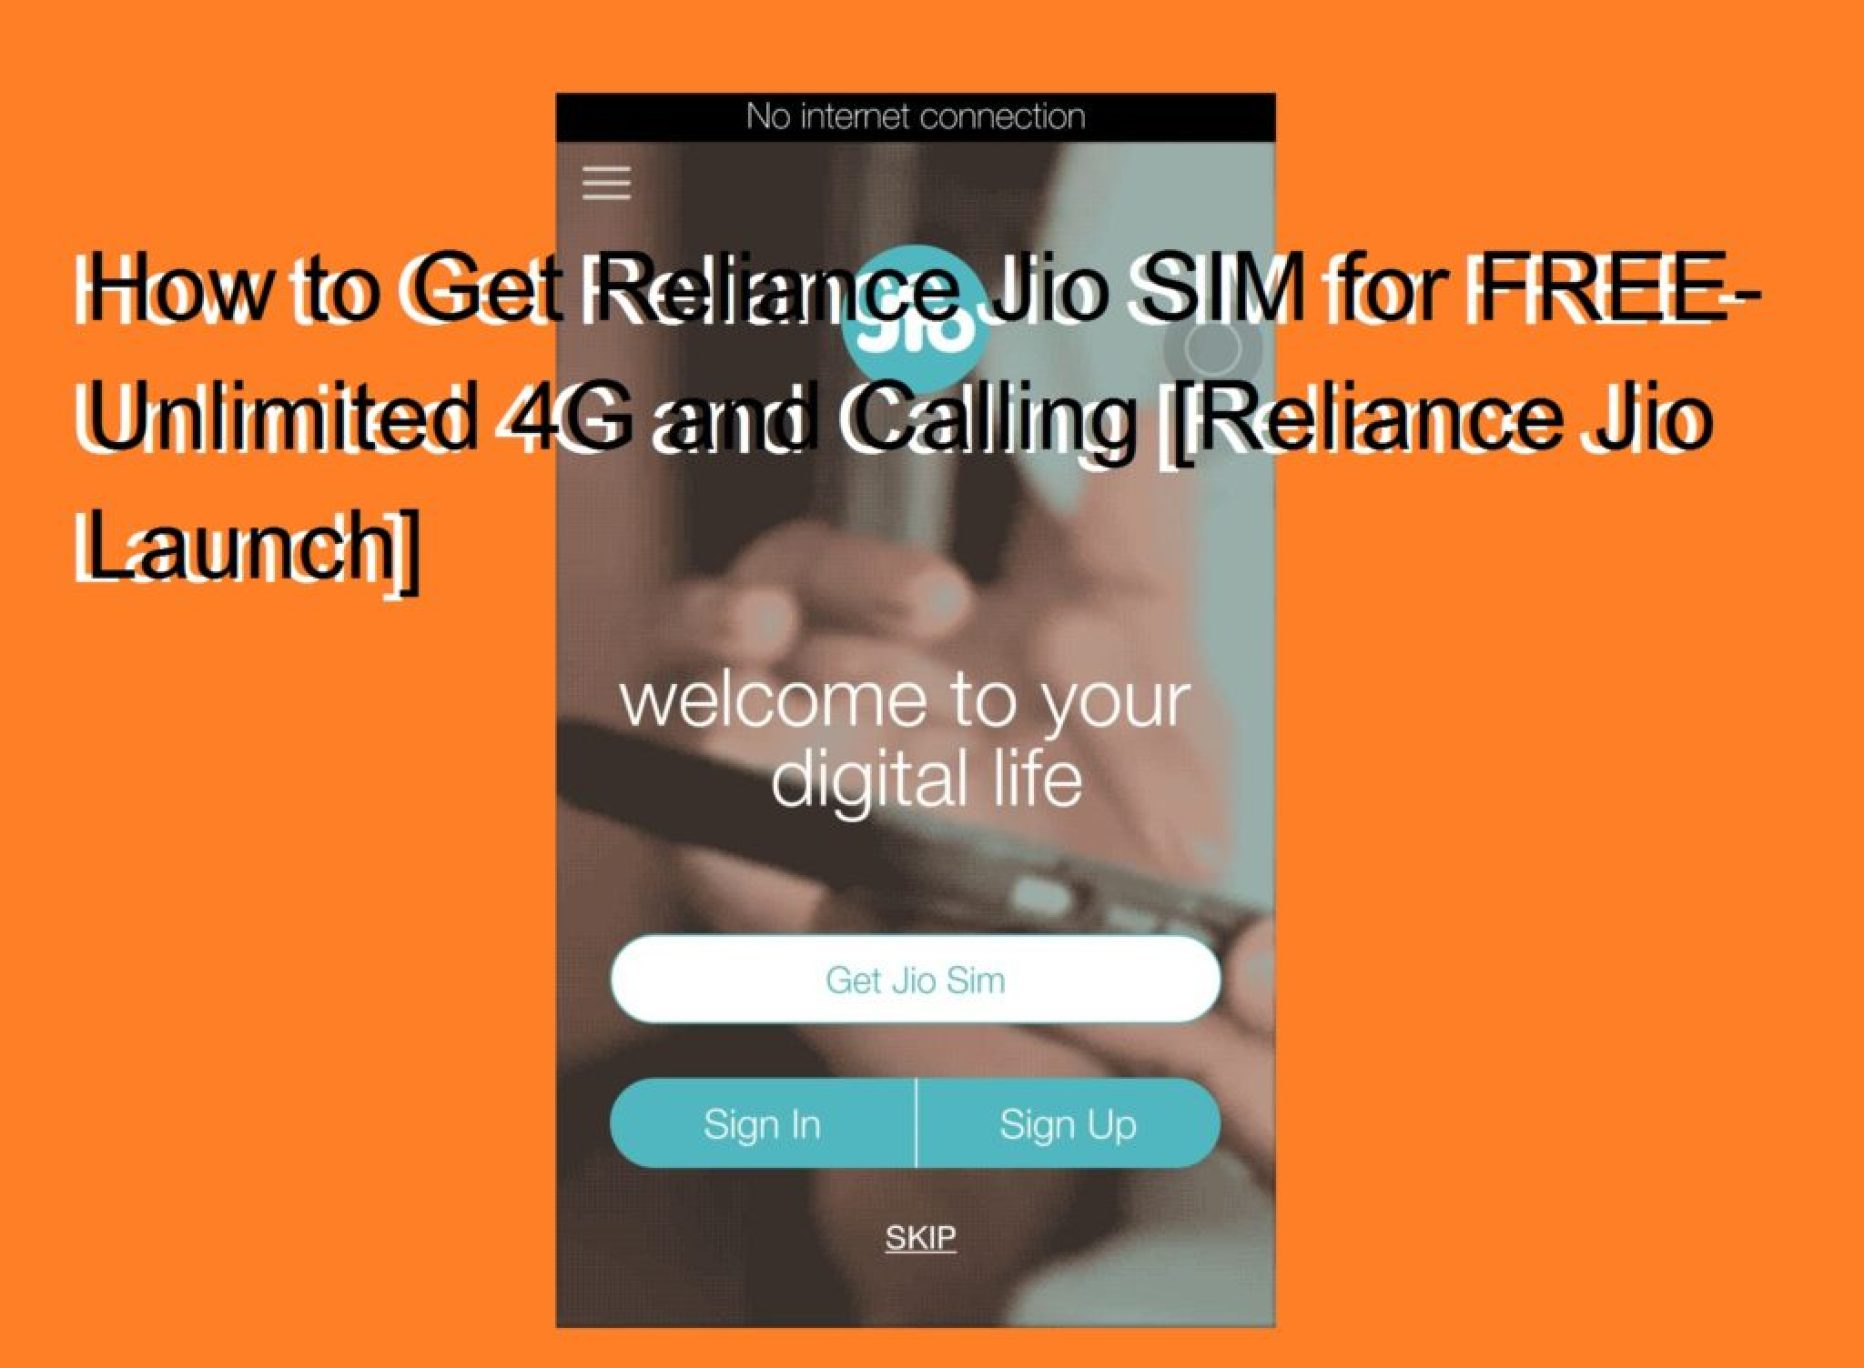 How to Get Reliance Jio SIM for FREE- Unlimited 4G and Calling [Reliance Jio Launch]